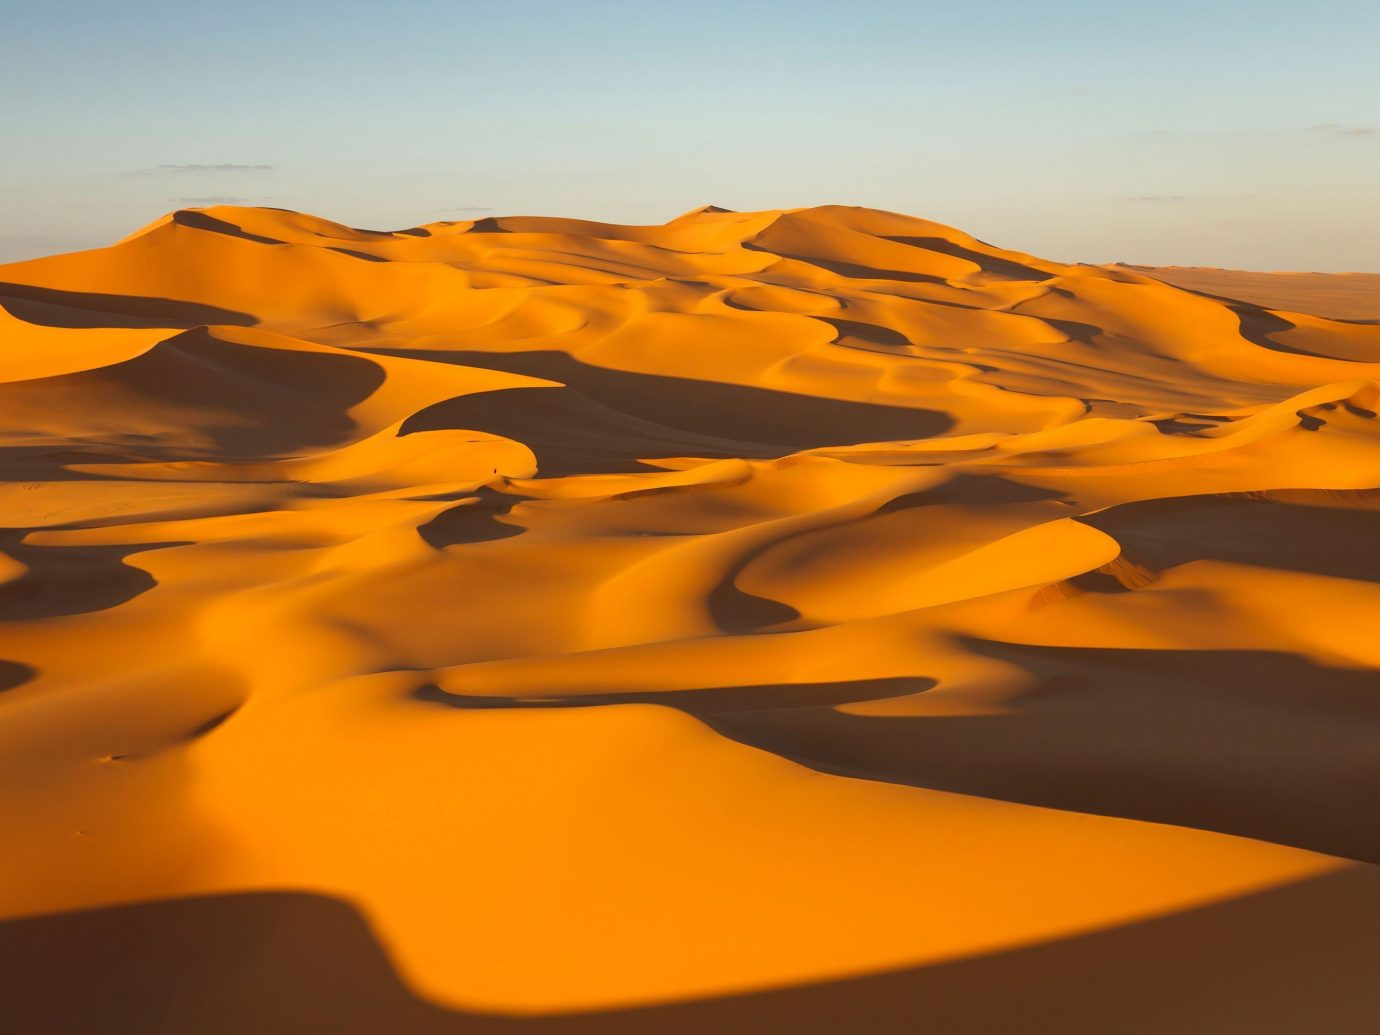 Trip Ideas erg habitat sahara geographical feature Desert natural environment Nature landform aeolian landform dune landscape sand wadi formation Sunset